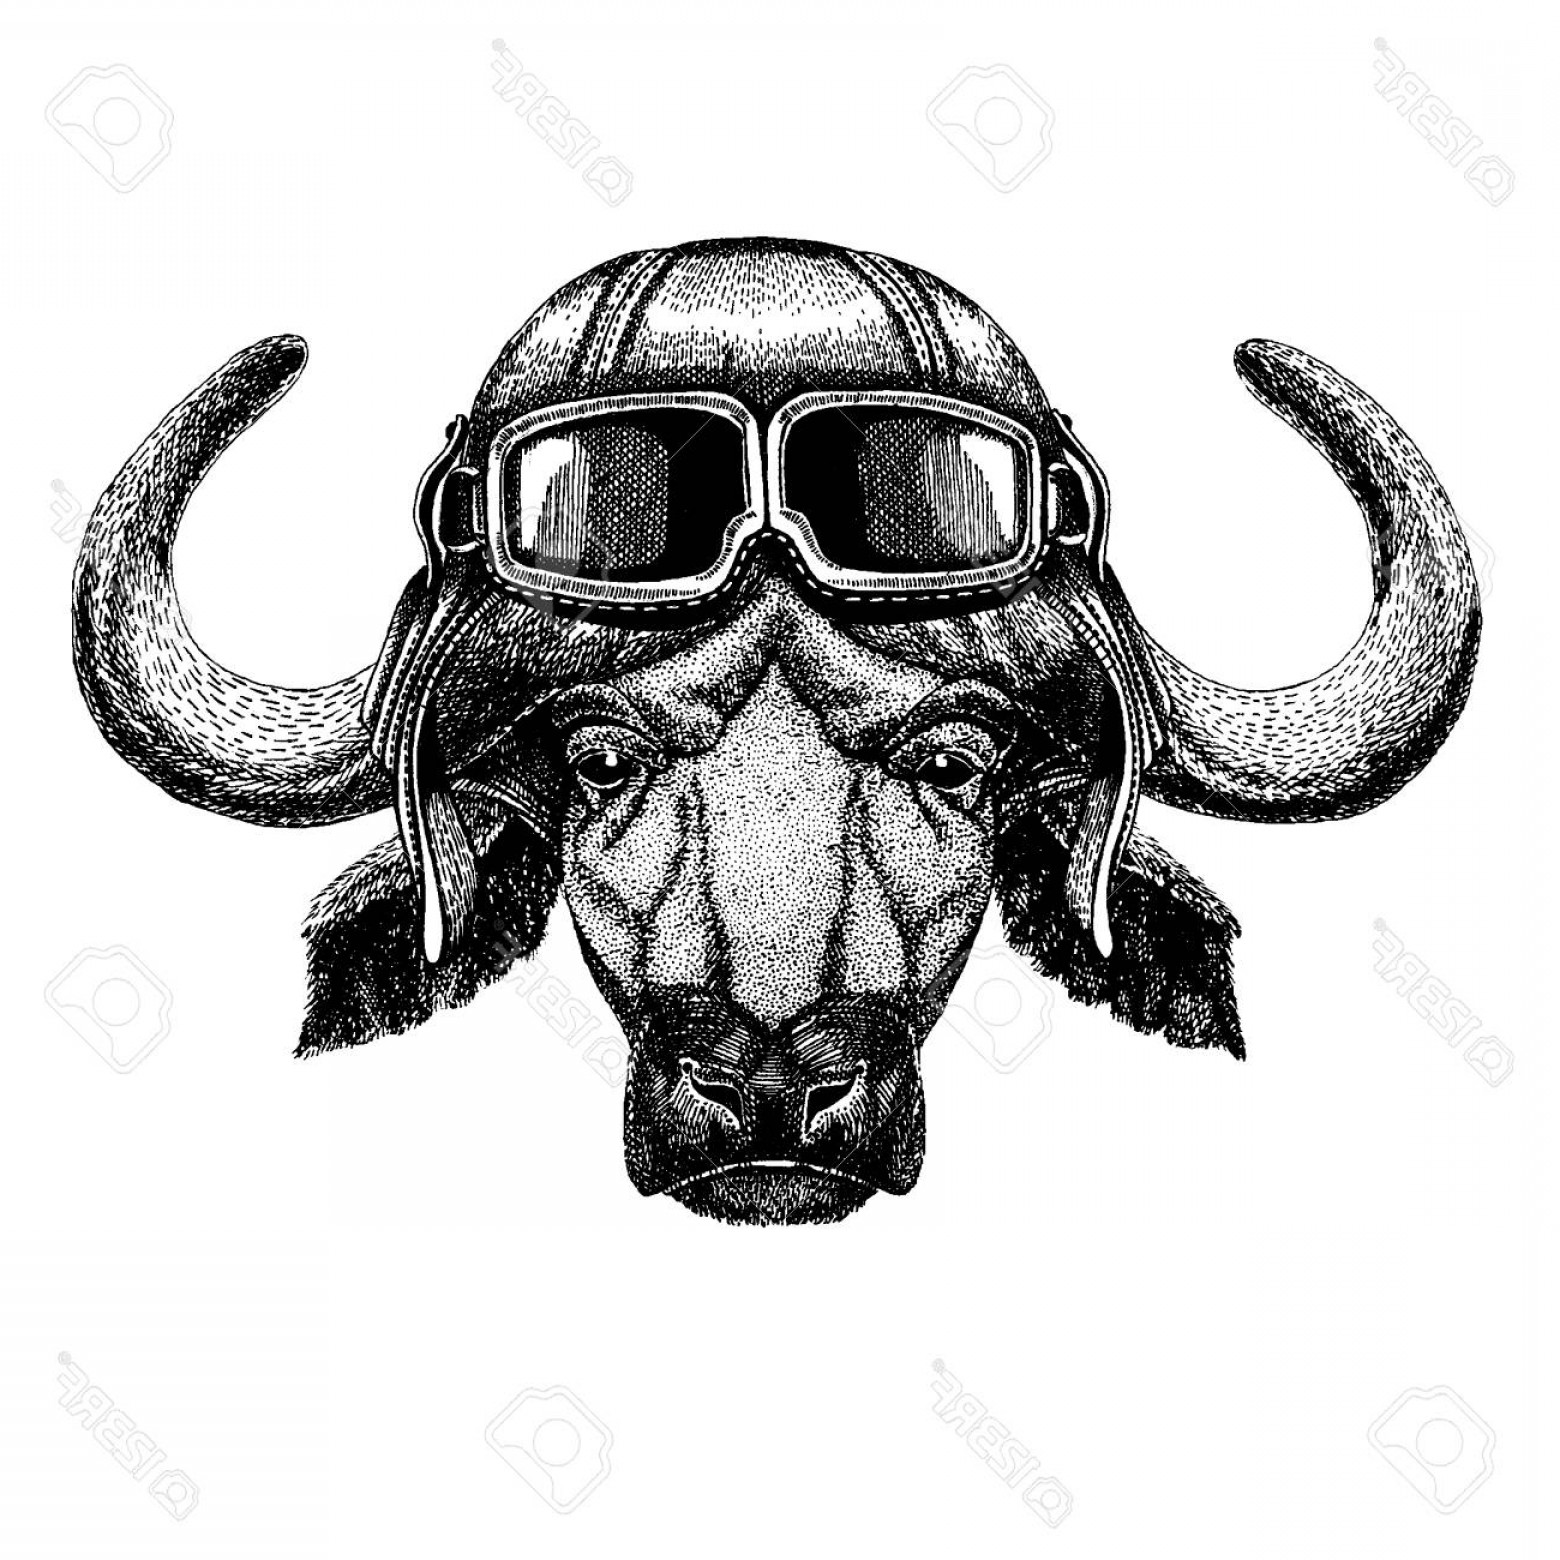 Aviator Vector Ink Drawings: Photostock Vector Animal Wearing Aviator Helmet With Glasses Vector Picture Buffalo Bull Ox Hand Drawn Illustration Fo